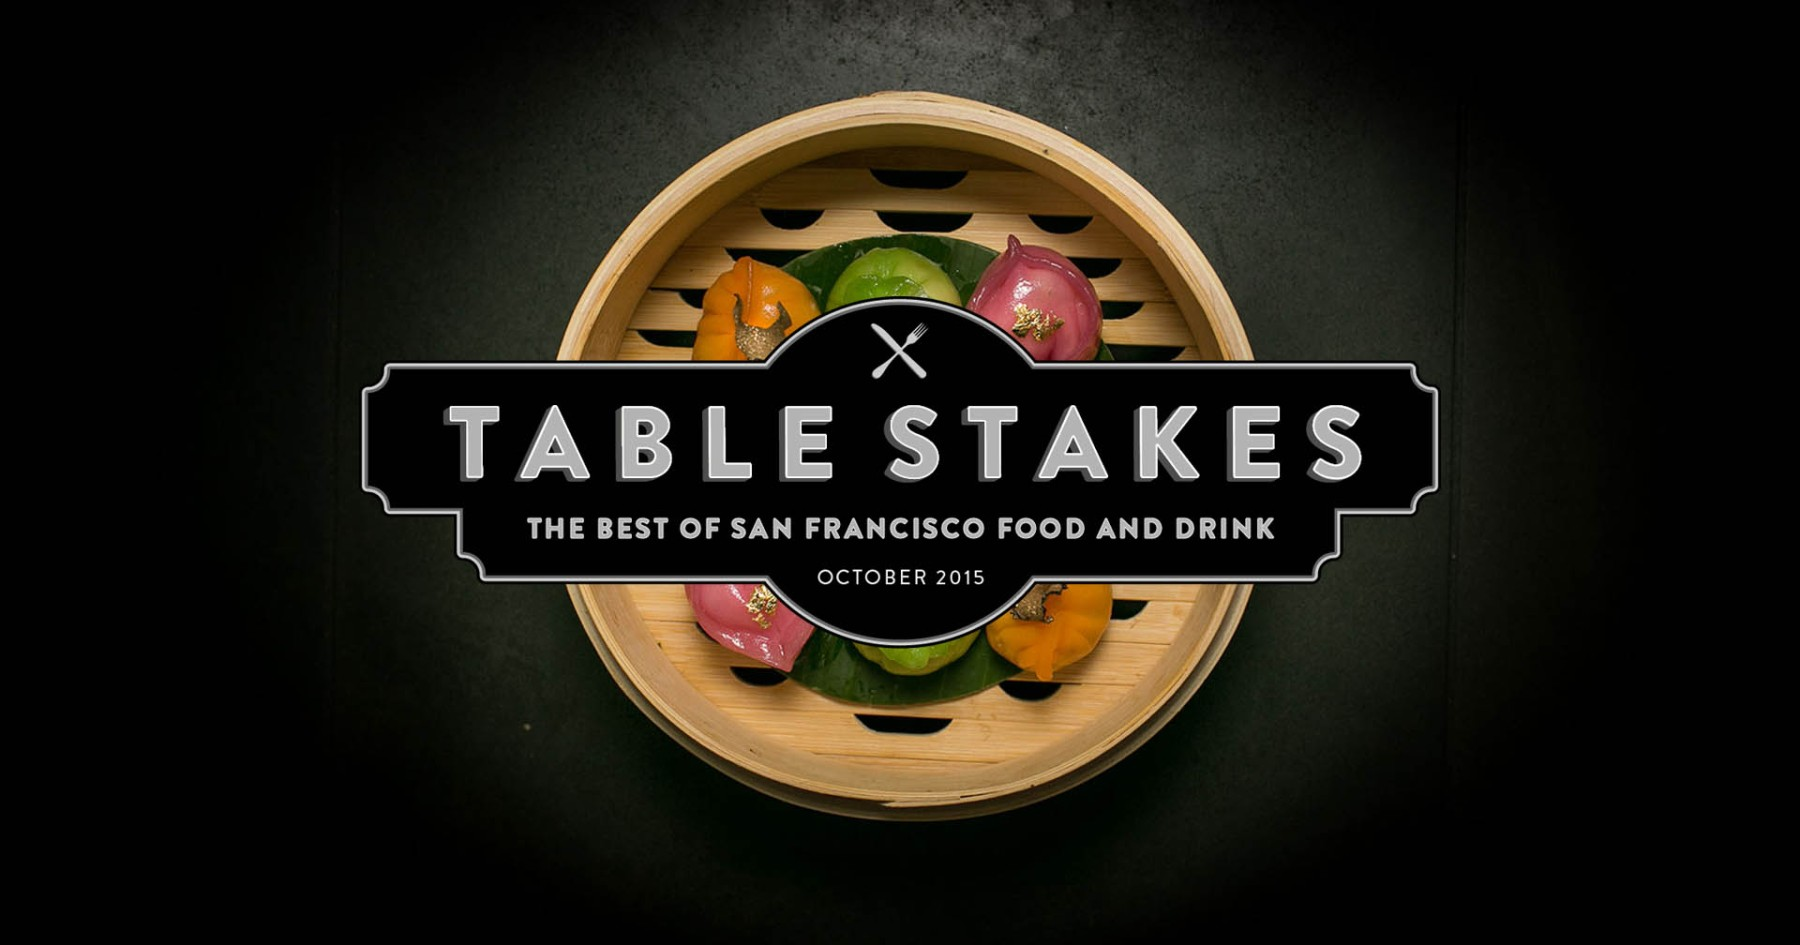 Table Stakes: The Best of San Francisco Food and Drink